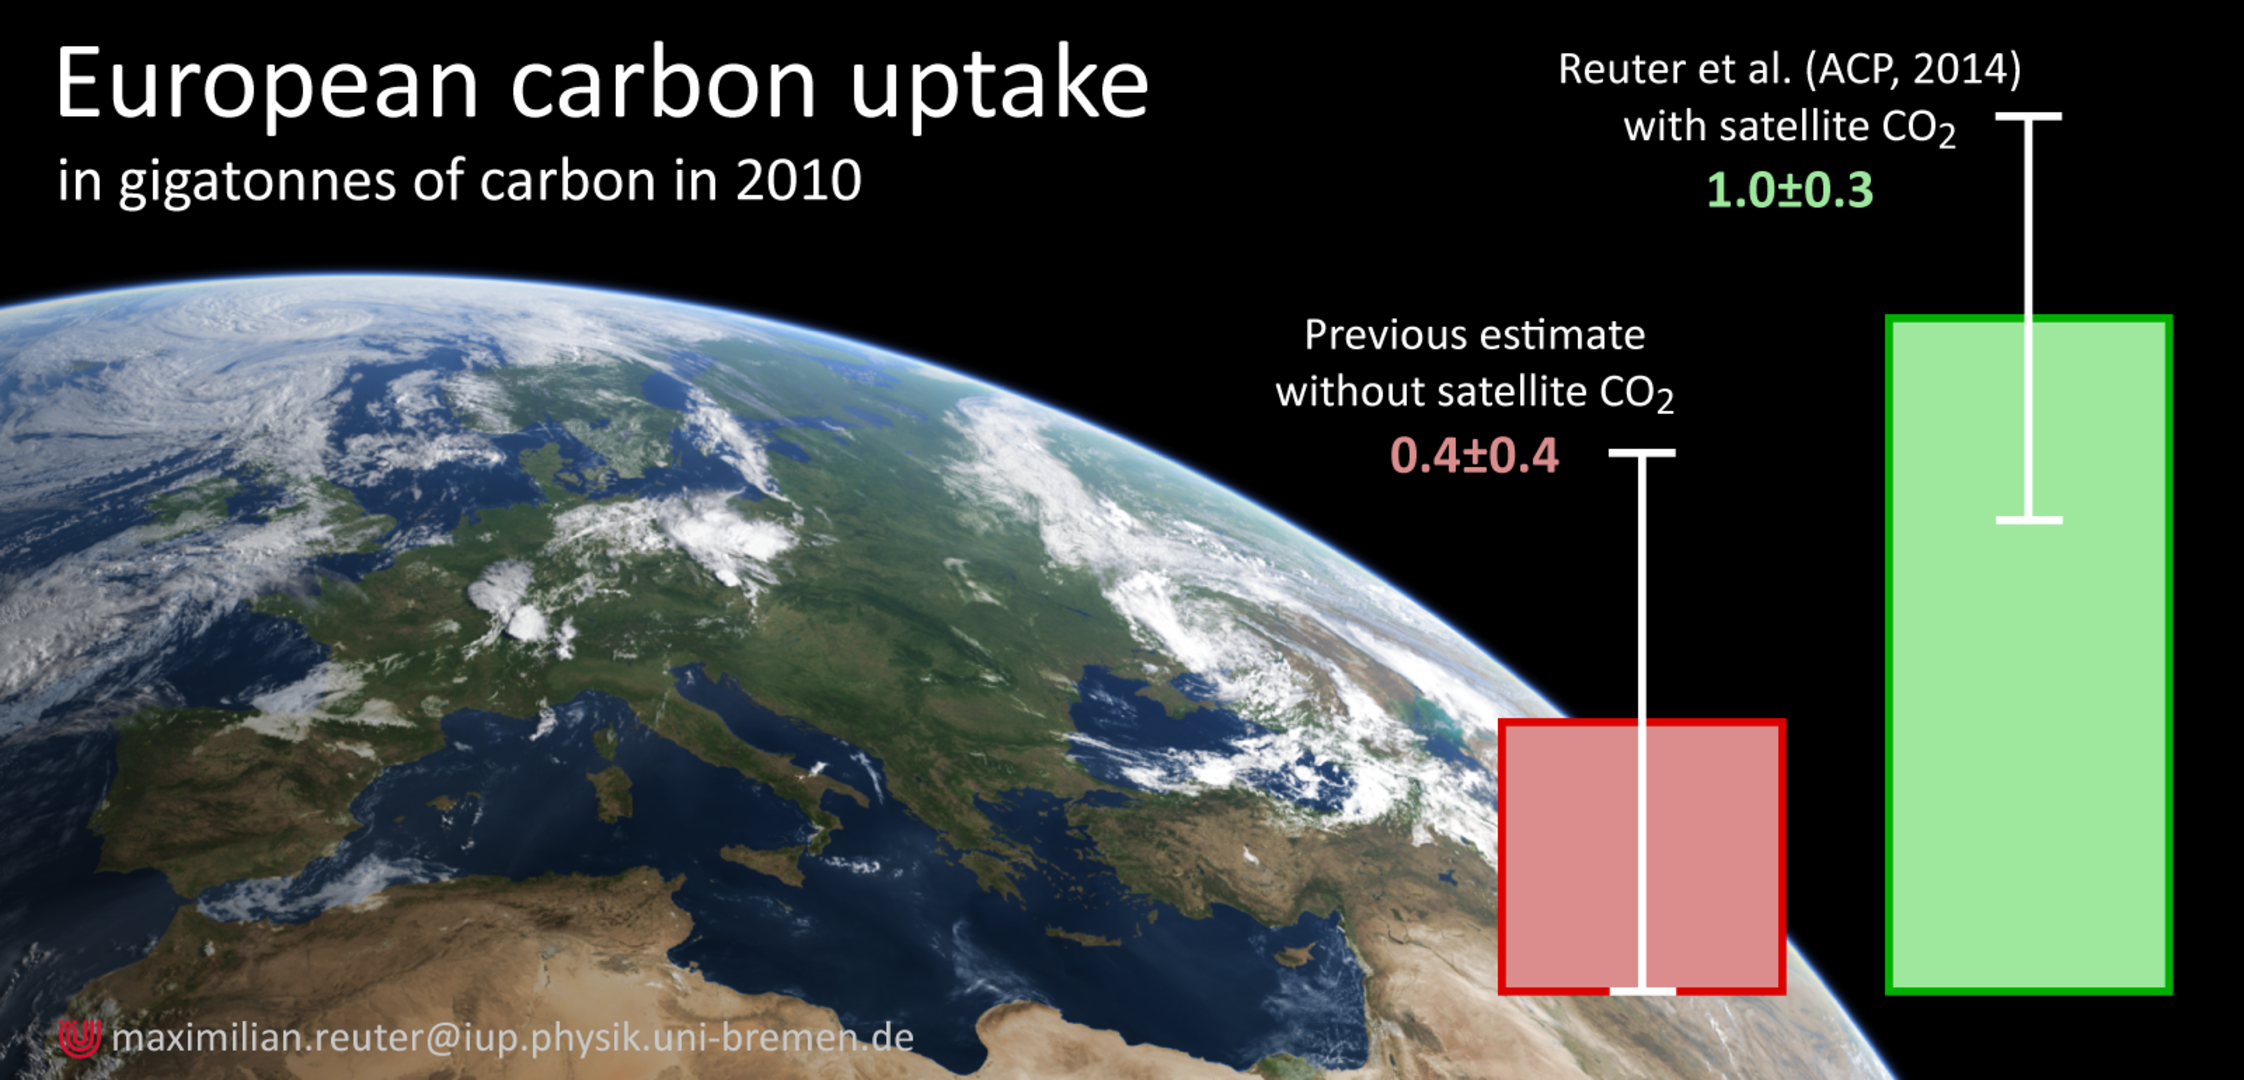 European carbon uptake